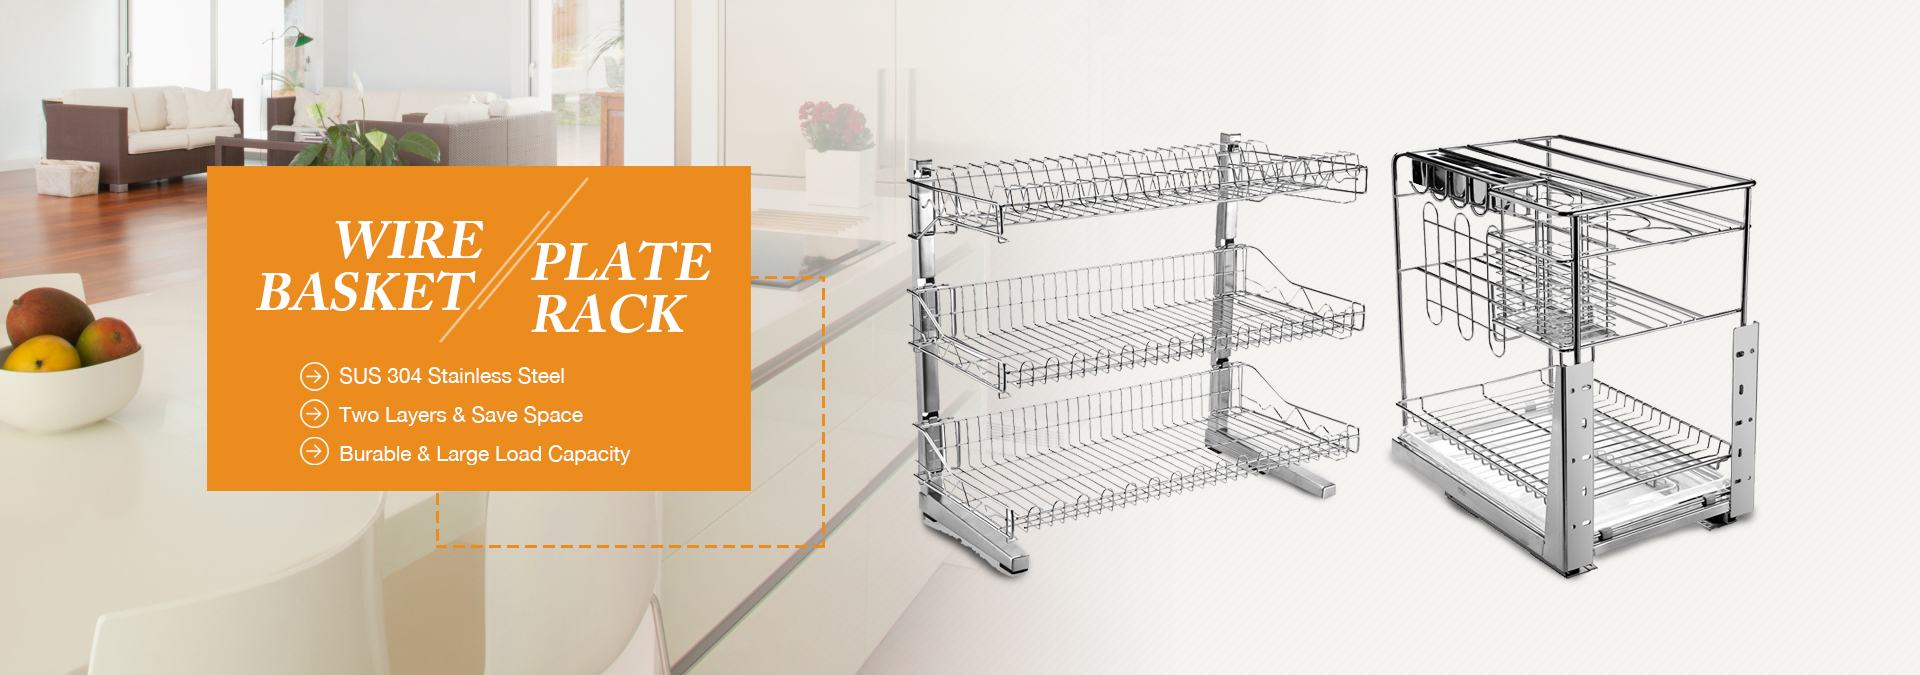 Dish racks and Wire basket